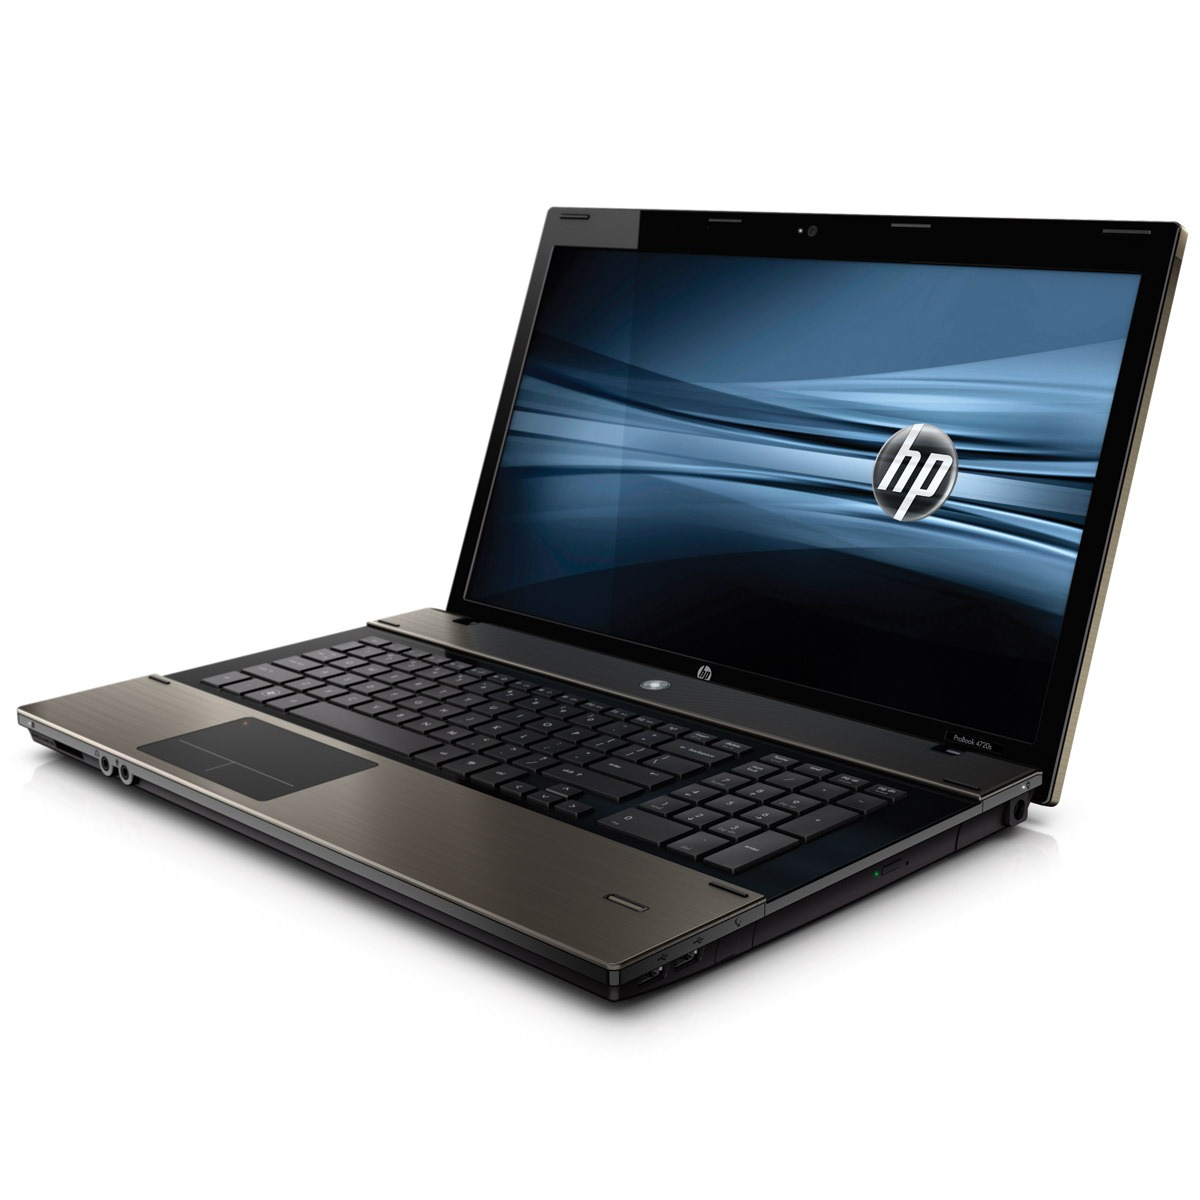 "PC portable HP ProBook 4720s HP ProBook 4720s - Intel Core i3-330M 3 Go 320 Go 17.3"" LED ATI Mobility Radeon HD 4330 Graveur DVD LightScribe Wi-Fi N/Bluetooth Webcam Windows 7 Professionnel 32 bits"